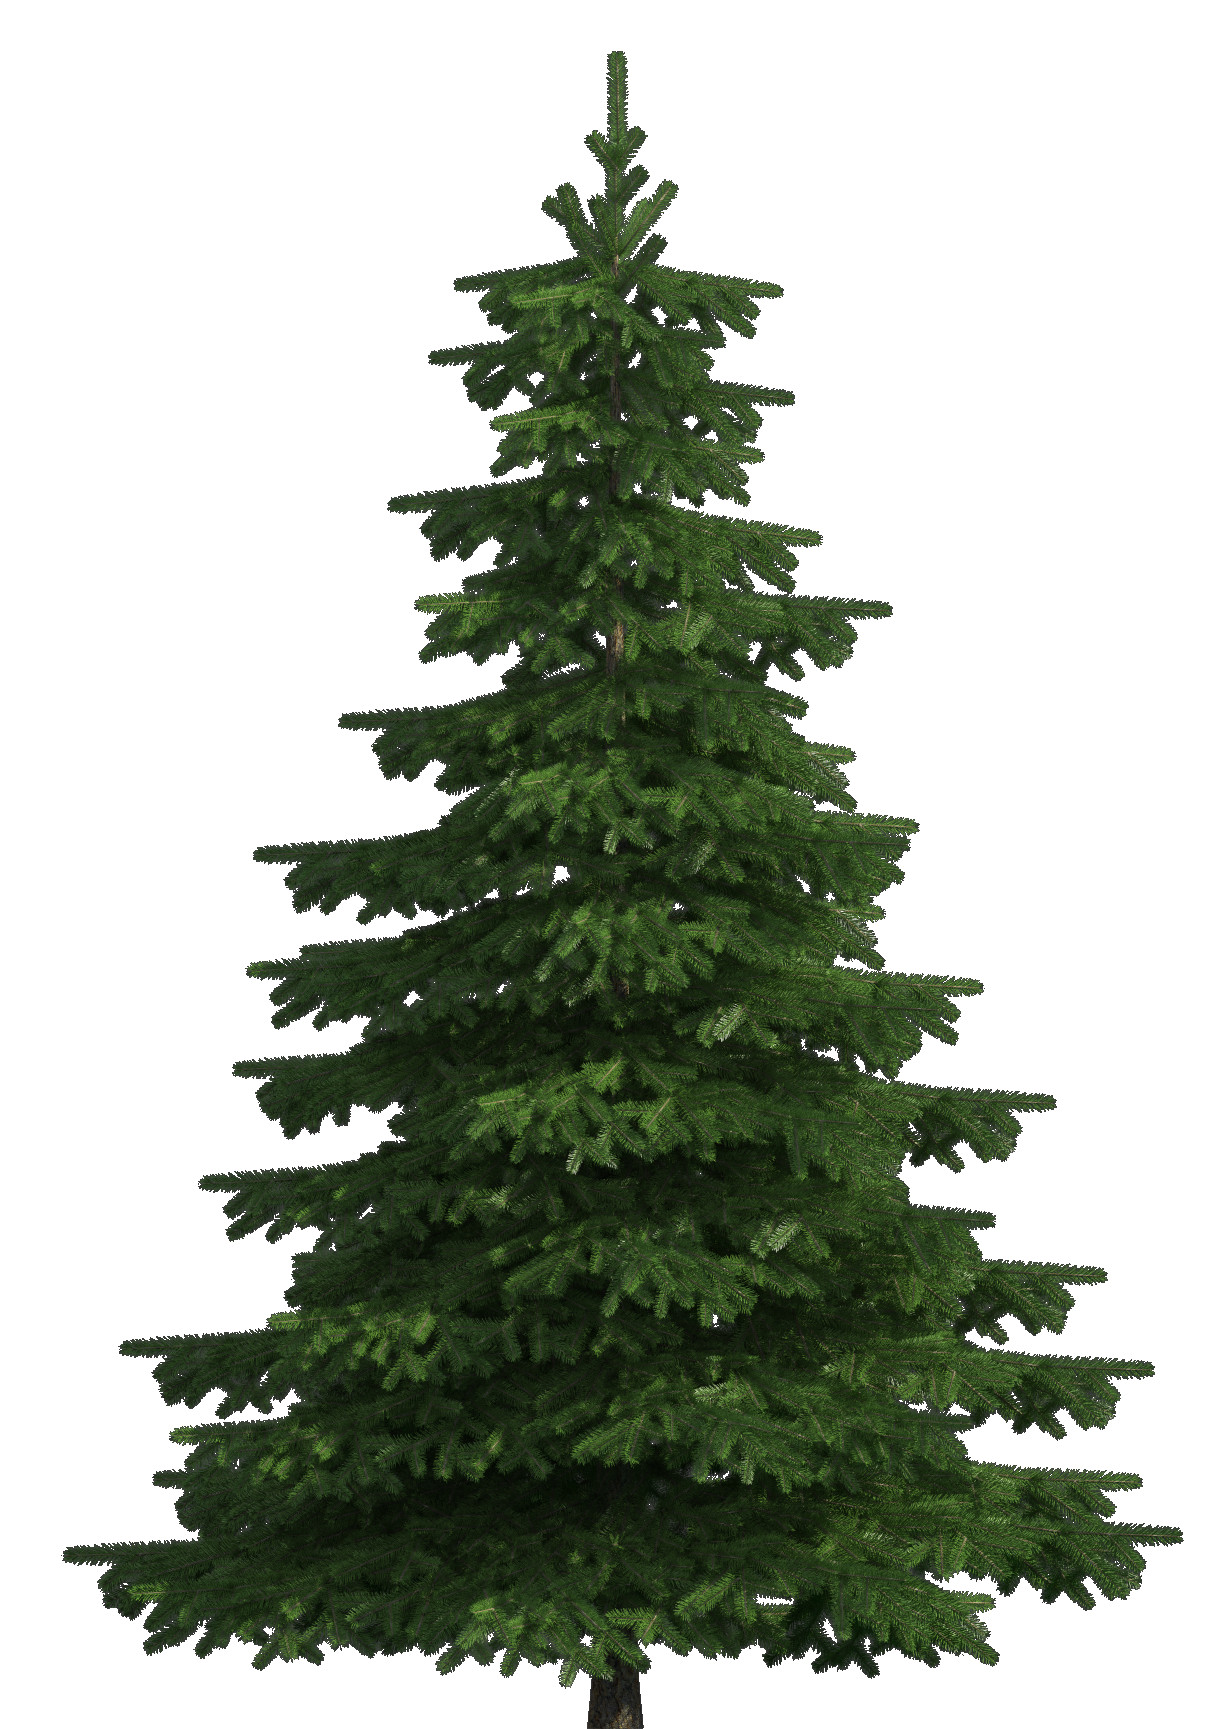 Web clipart realistic. Pine tree png clip